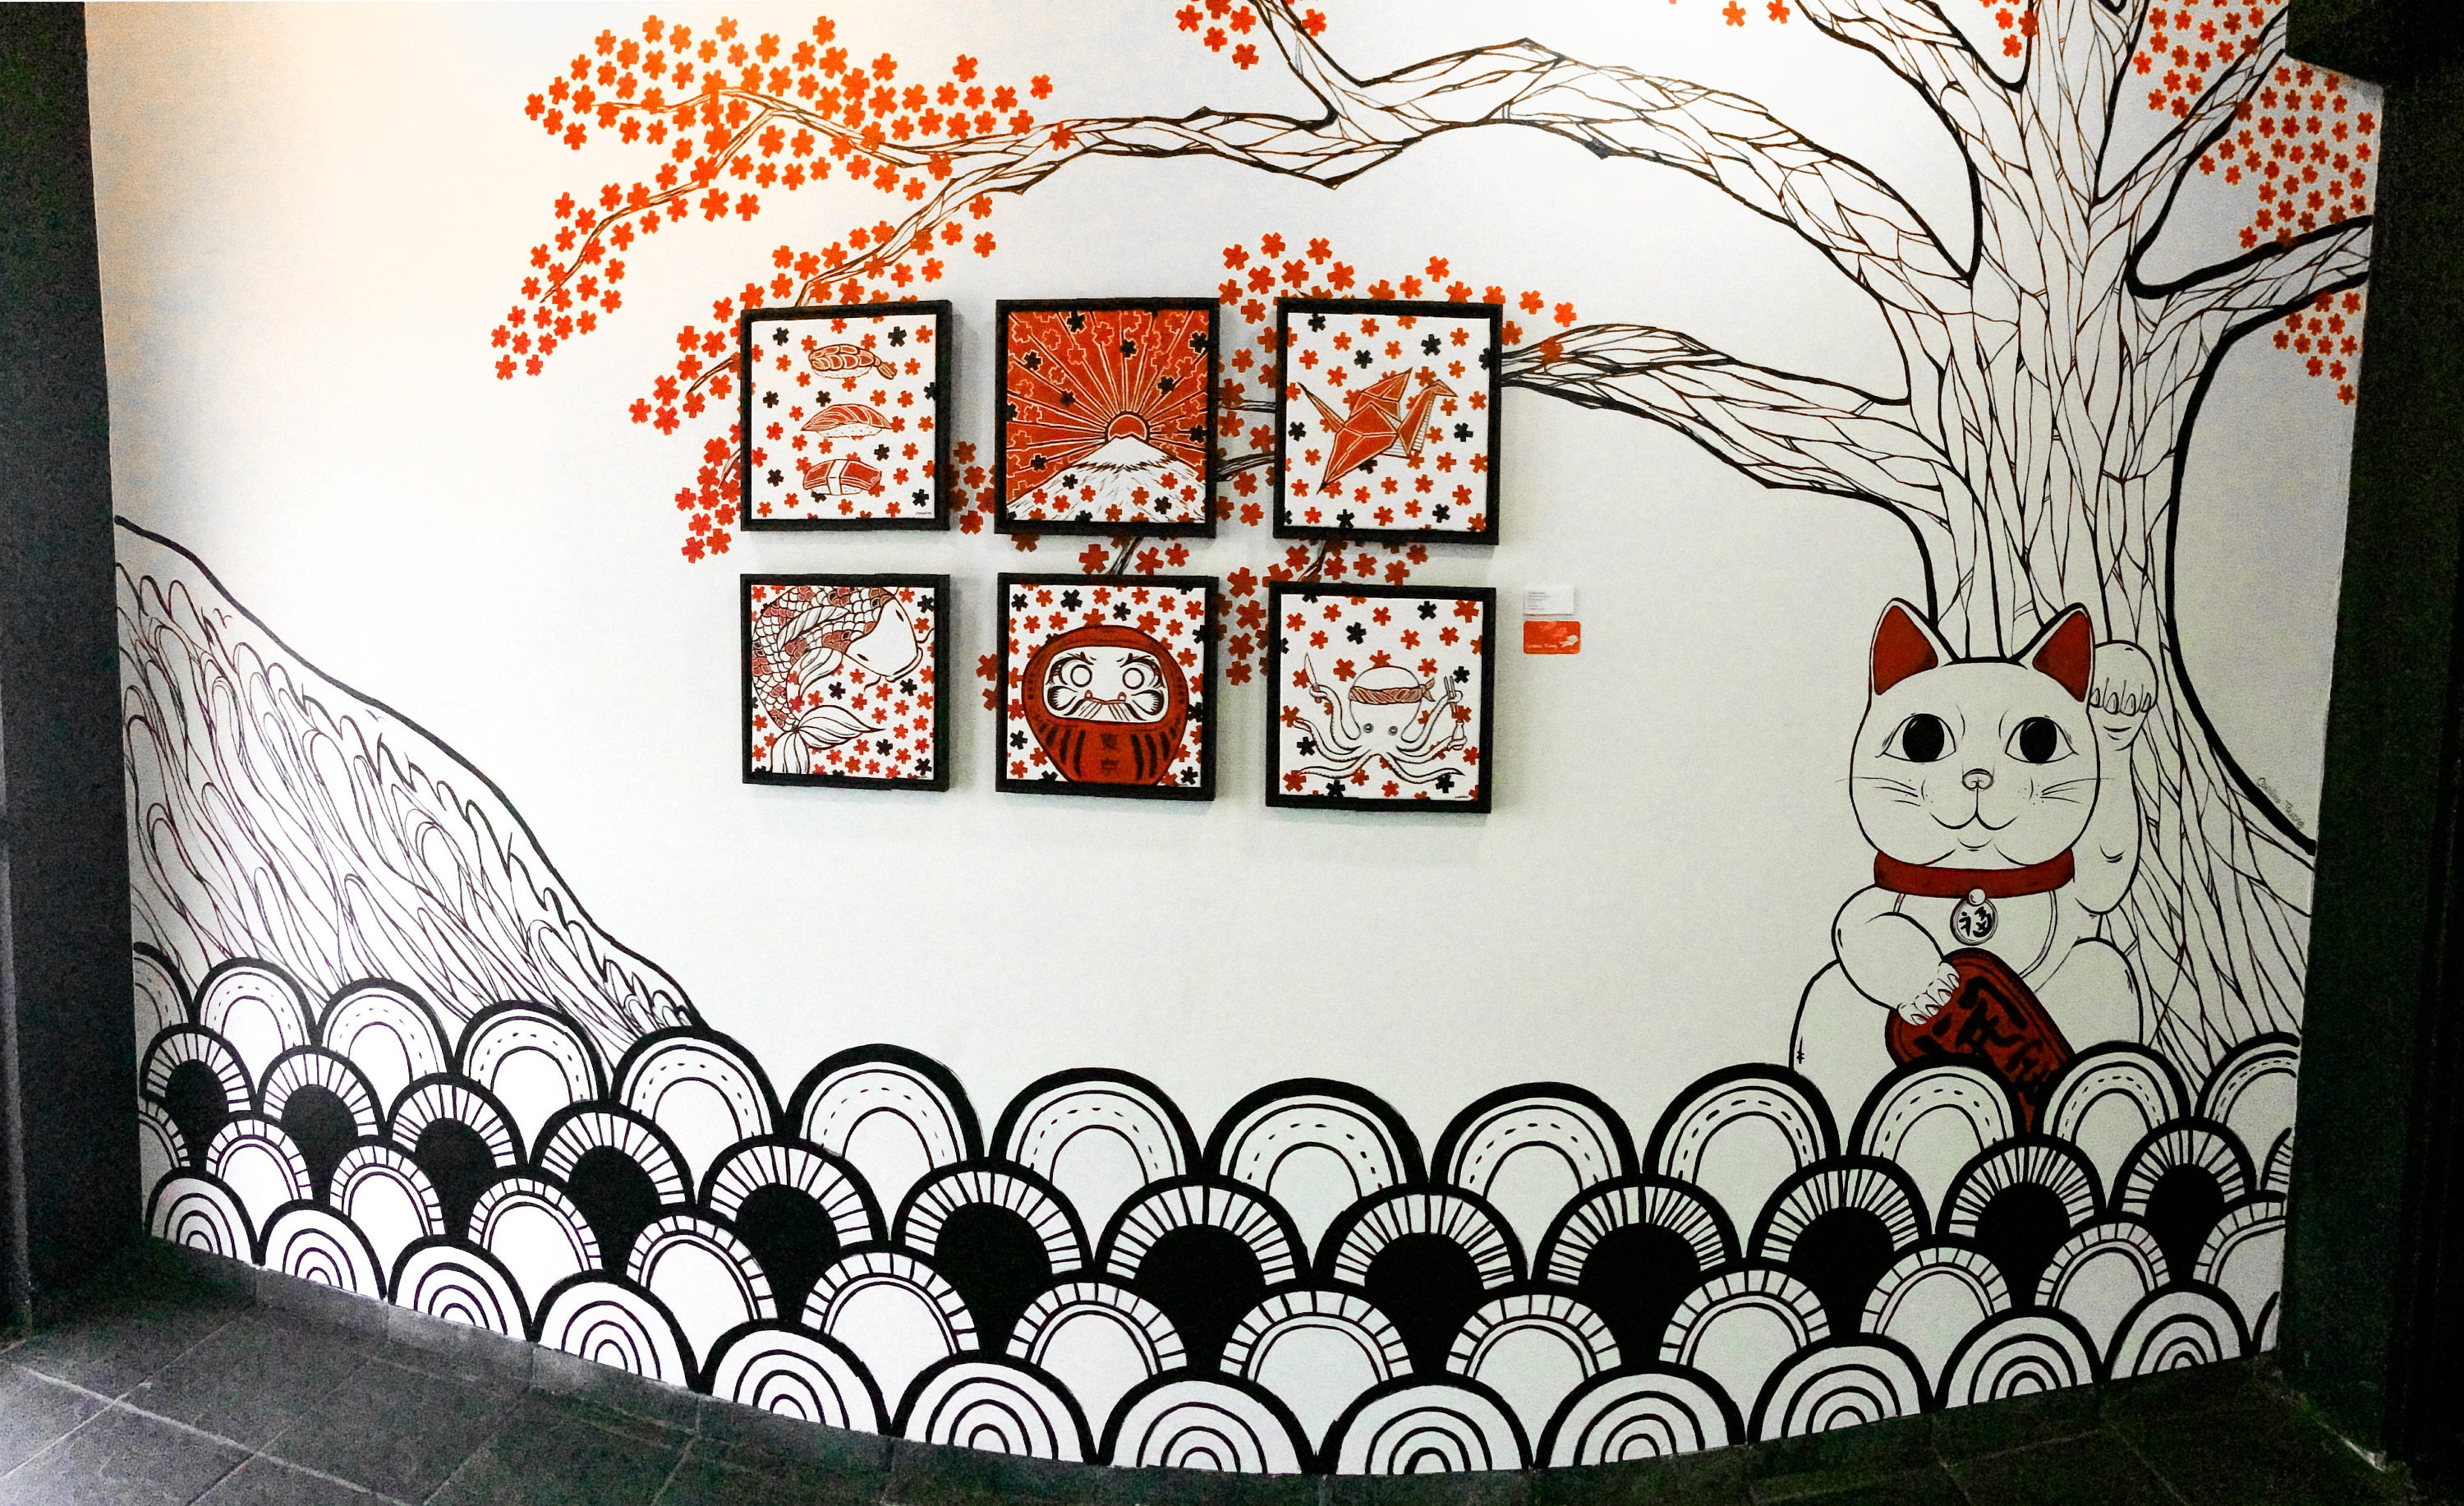 Japanese Mural Paintings - Tokyo Restaurant by Caroline Truong